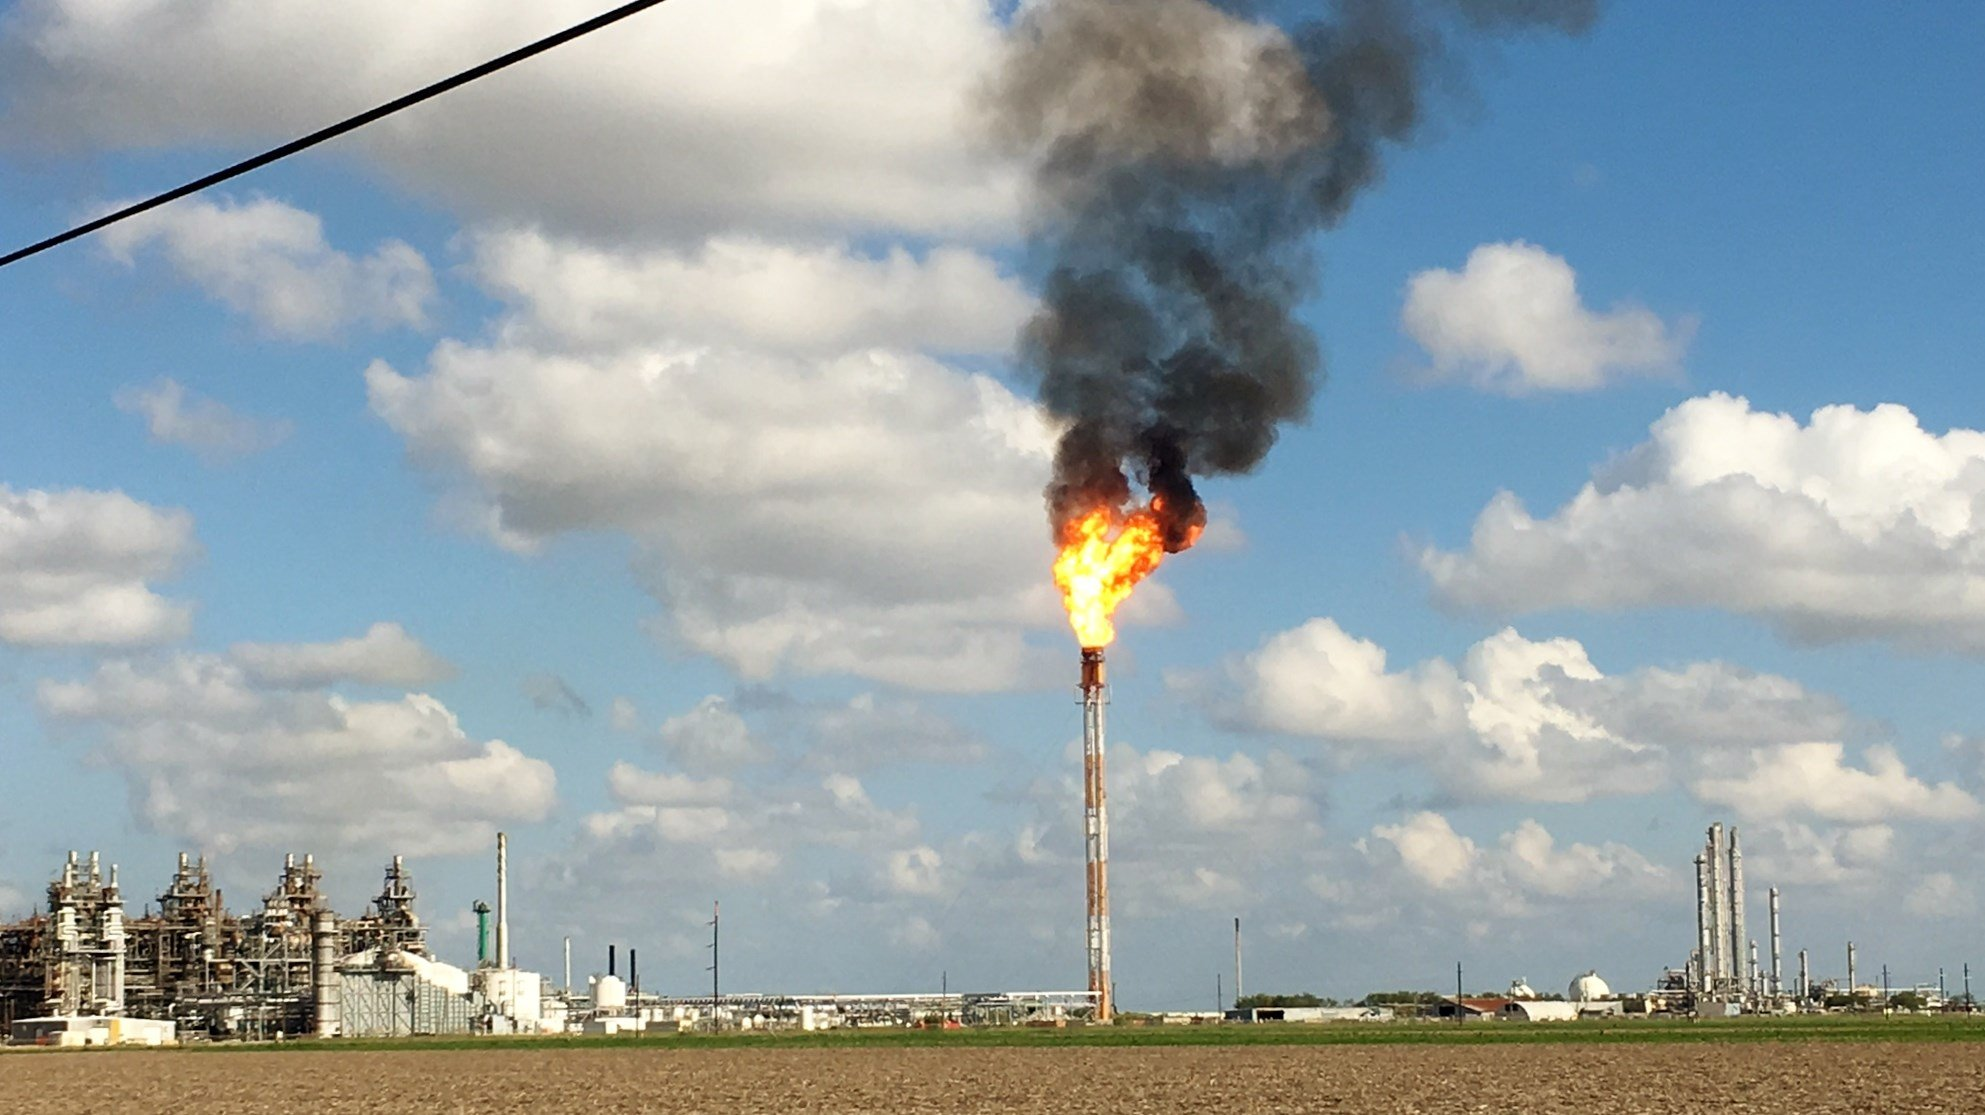 Photo: LyondellBasell facility flaring conditions (KRIS-TV)